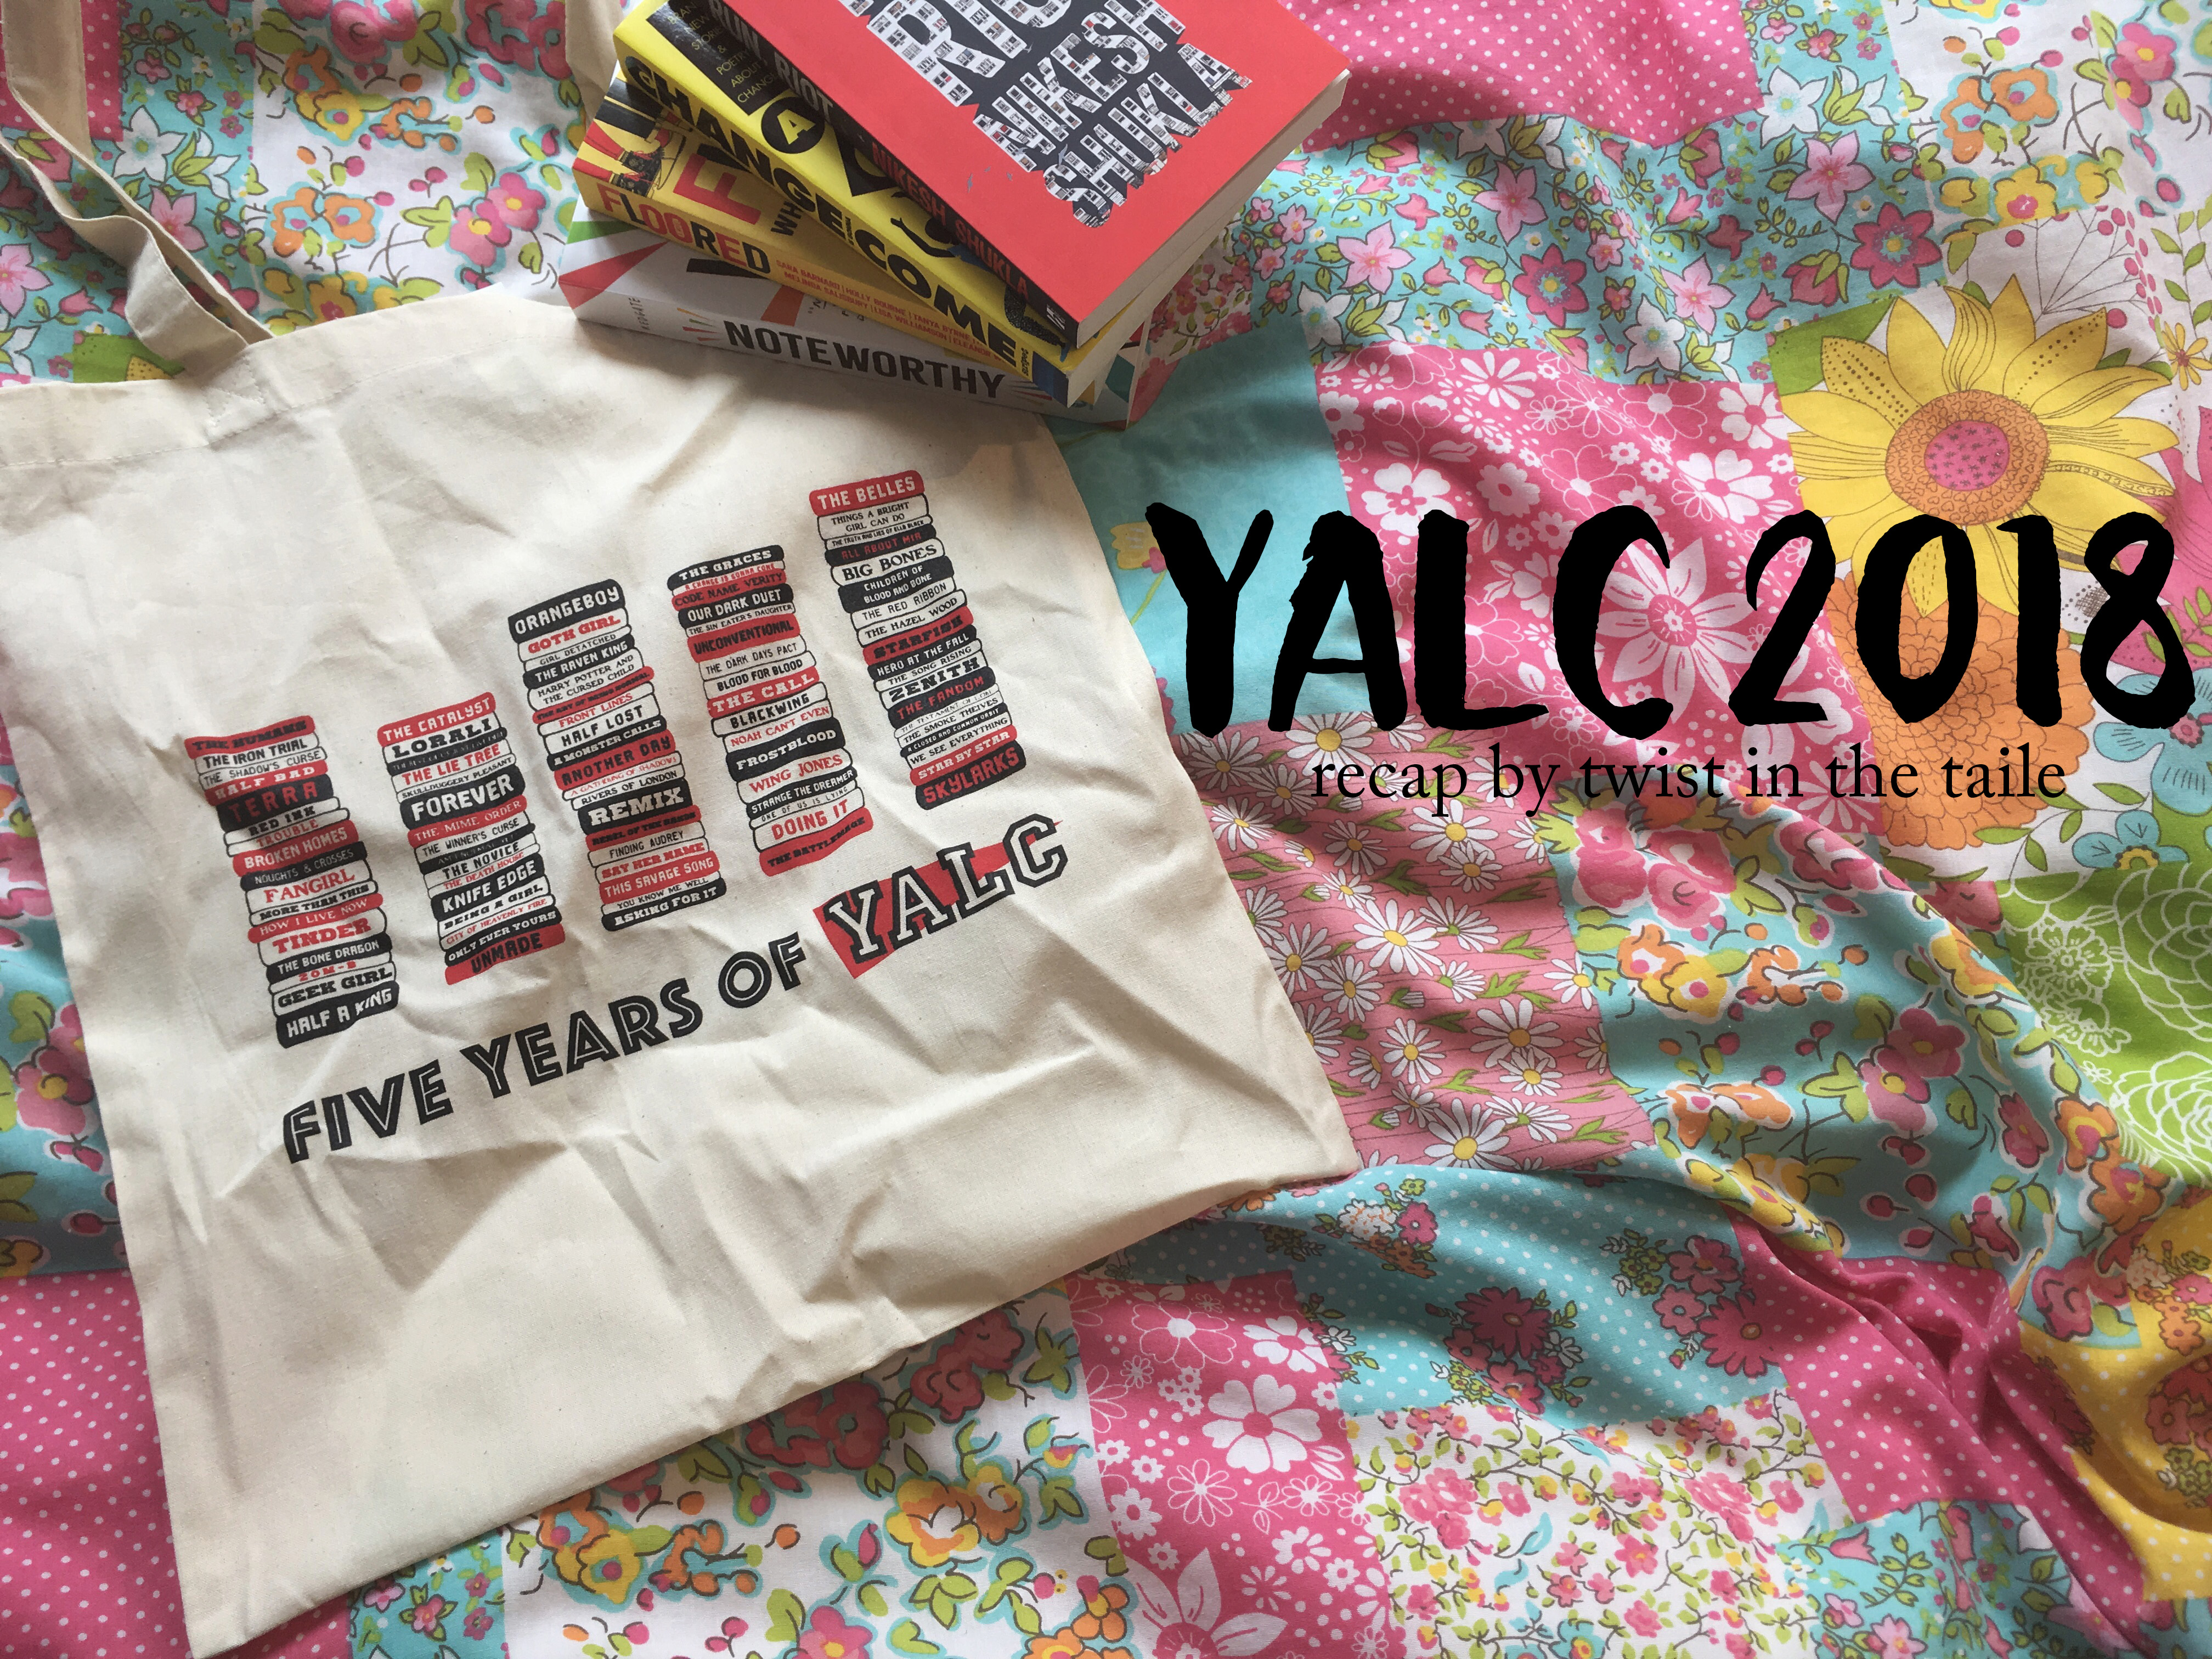 The words 'YALC 2018 recap by twist in the taile' next to a 'Five Years of YALC' tote bag and a pile of books. The top book is Run, Riot.